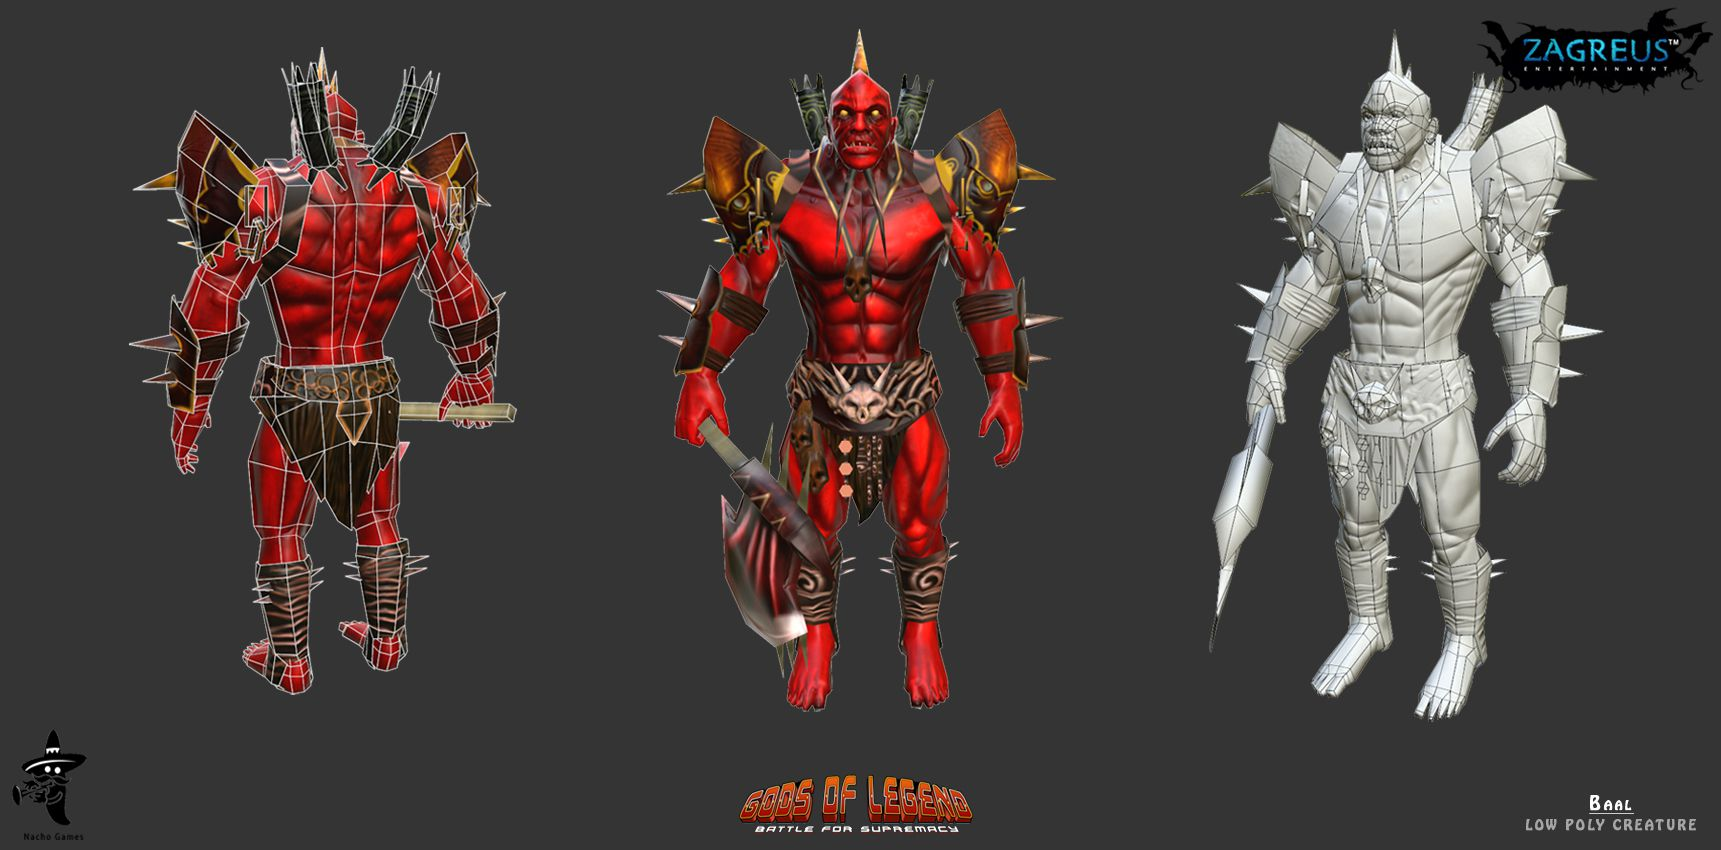 baal-character-low-poly_ze.jpg